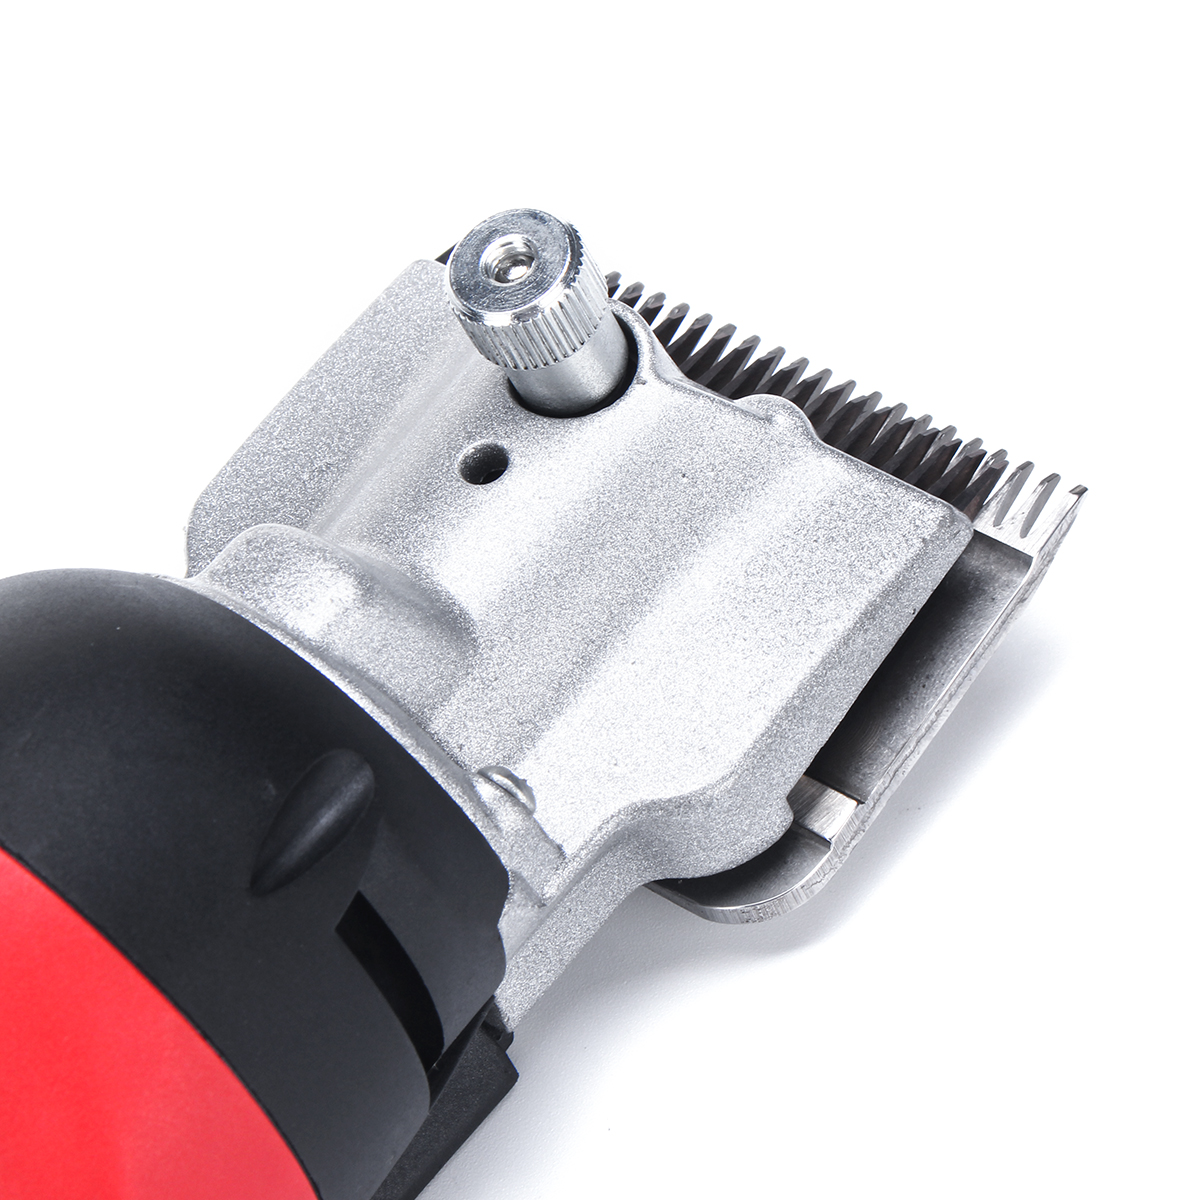 2400r/min 450W Professional Electric Animal Horse Camel Dog Clipper Horse Camel Dog Hair Clipper